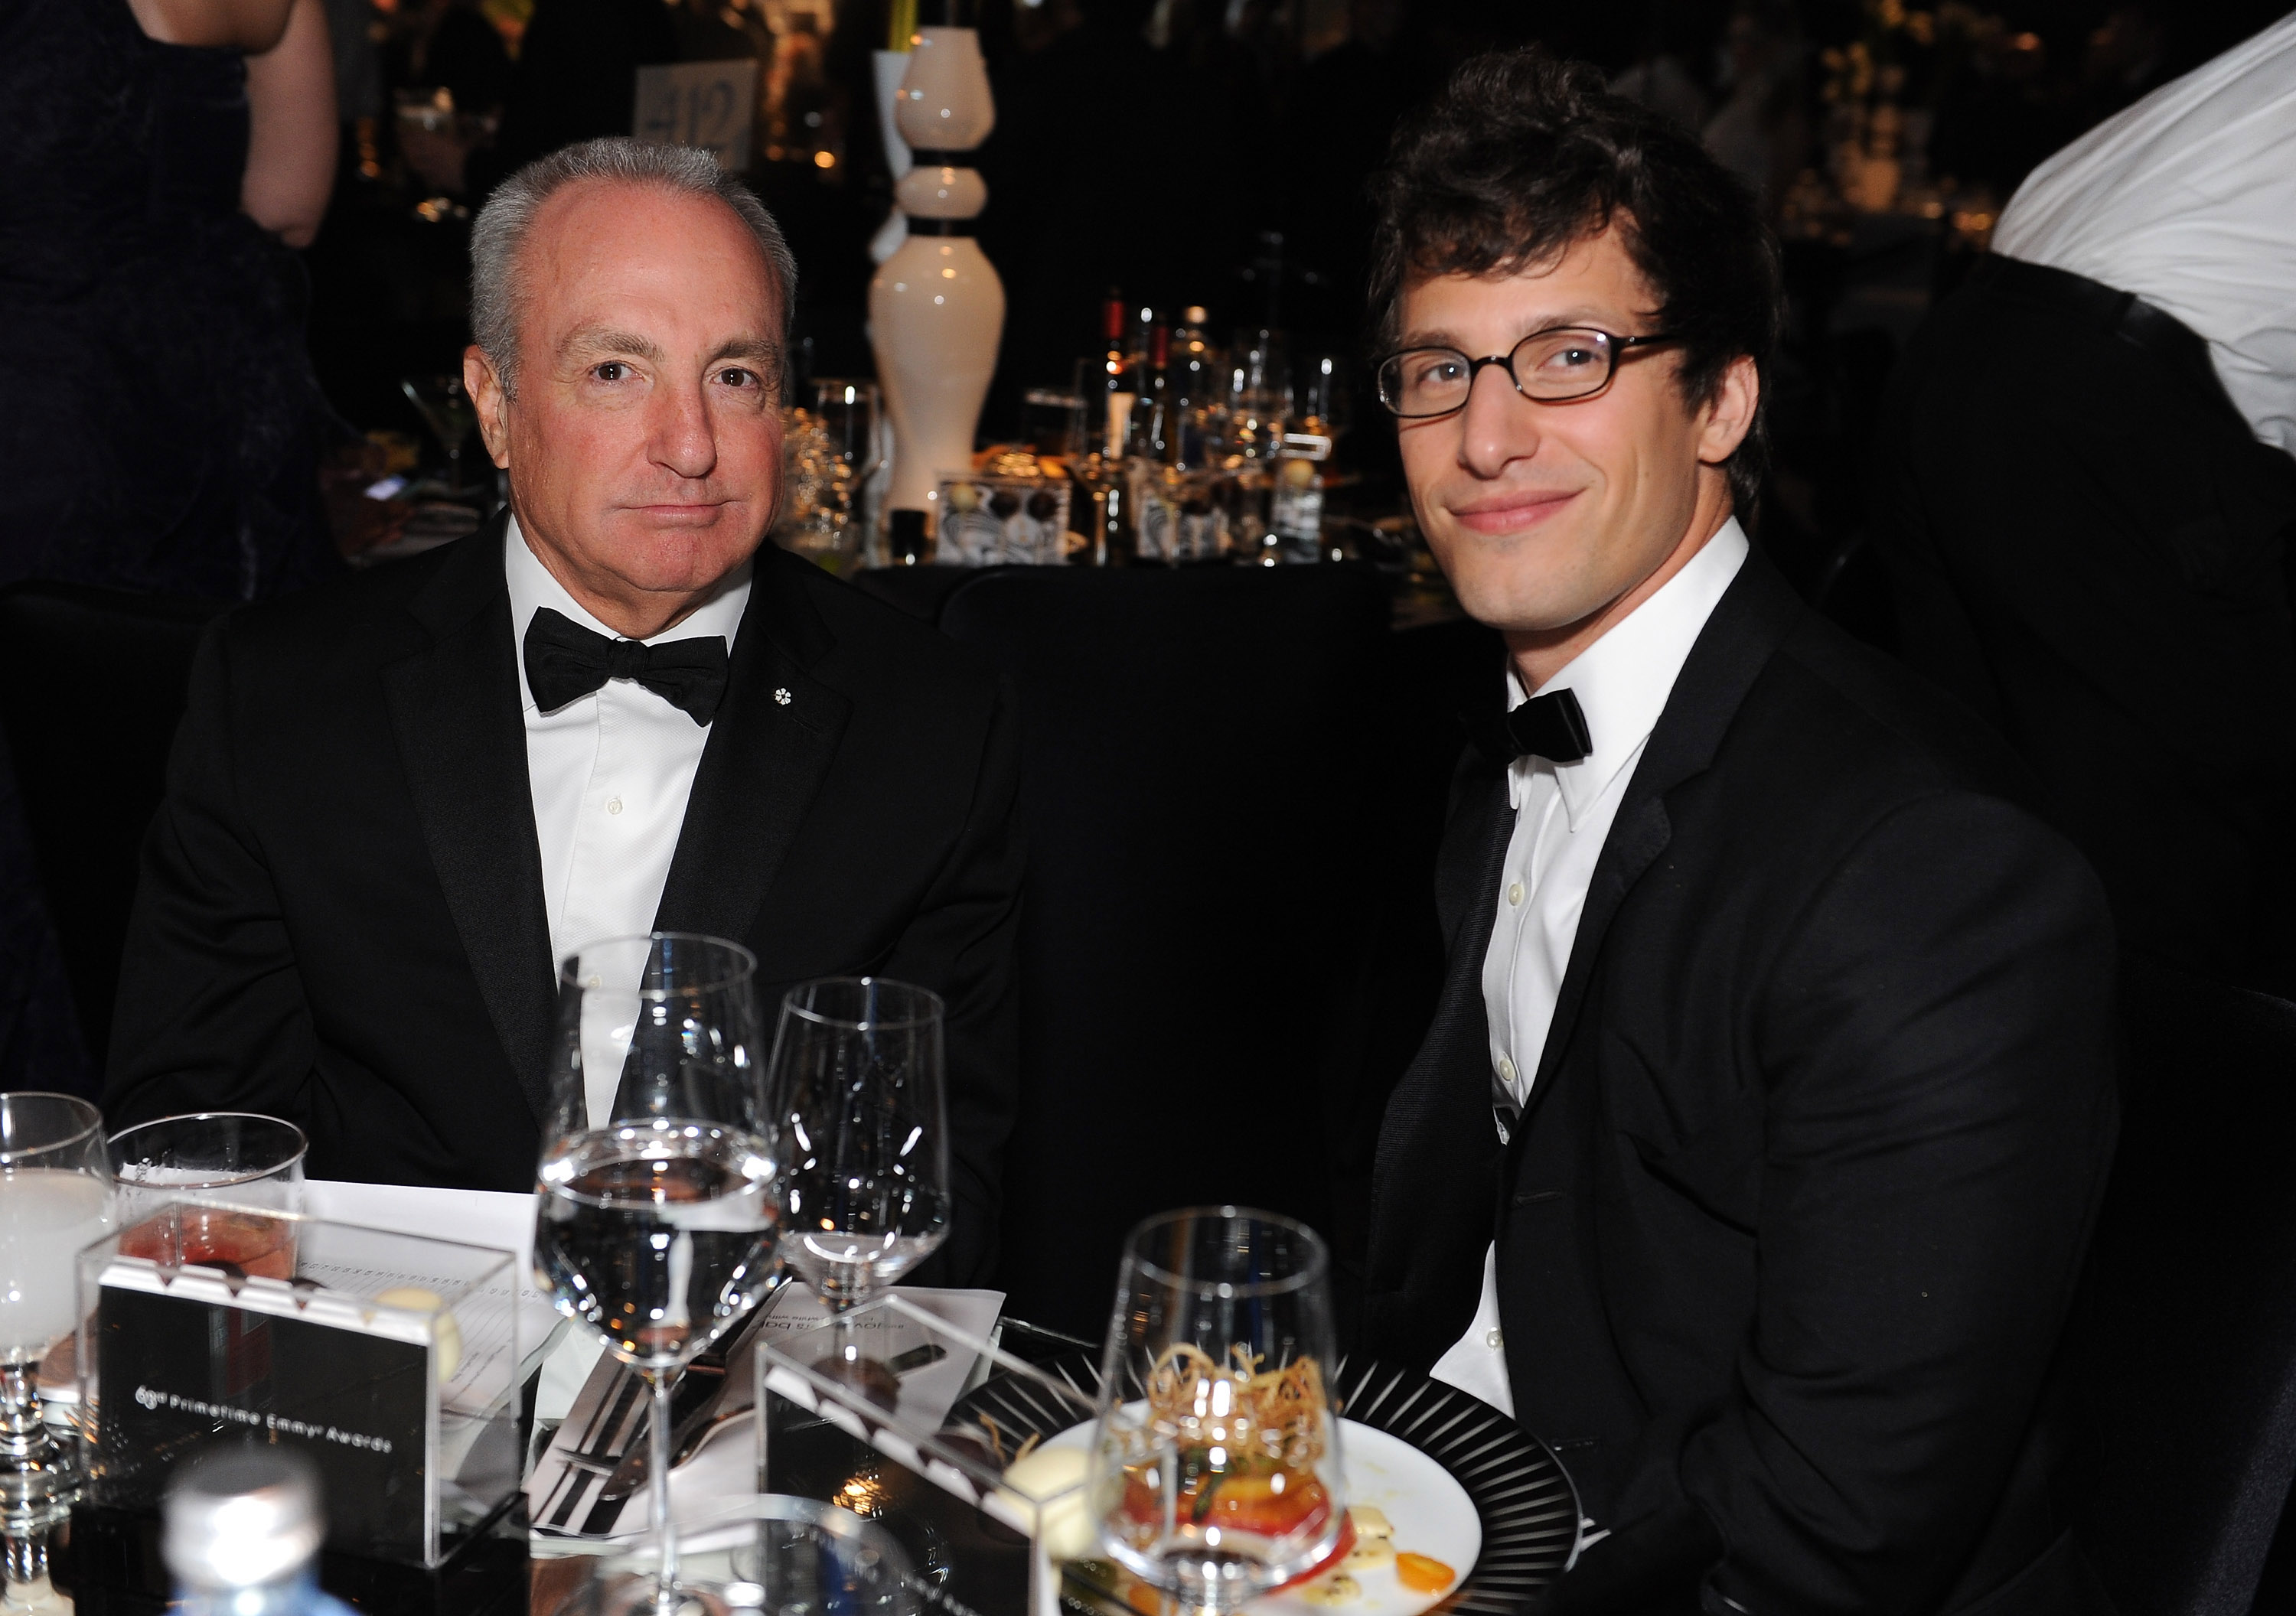 Lorne Michaels hangs out with Andy Samberg.